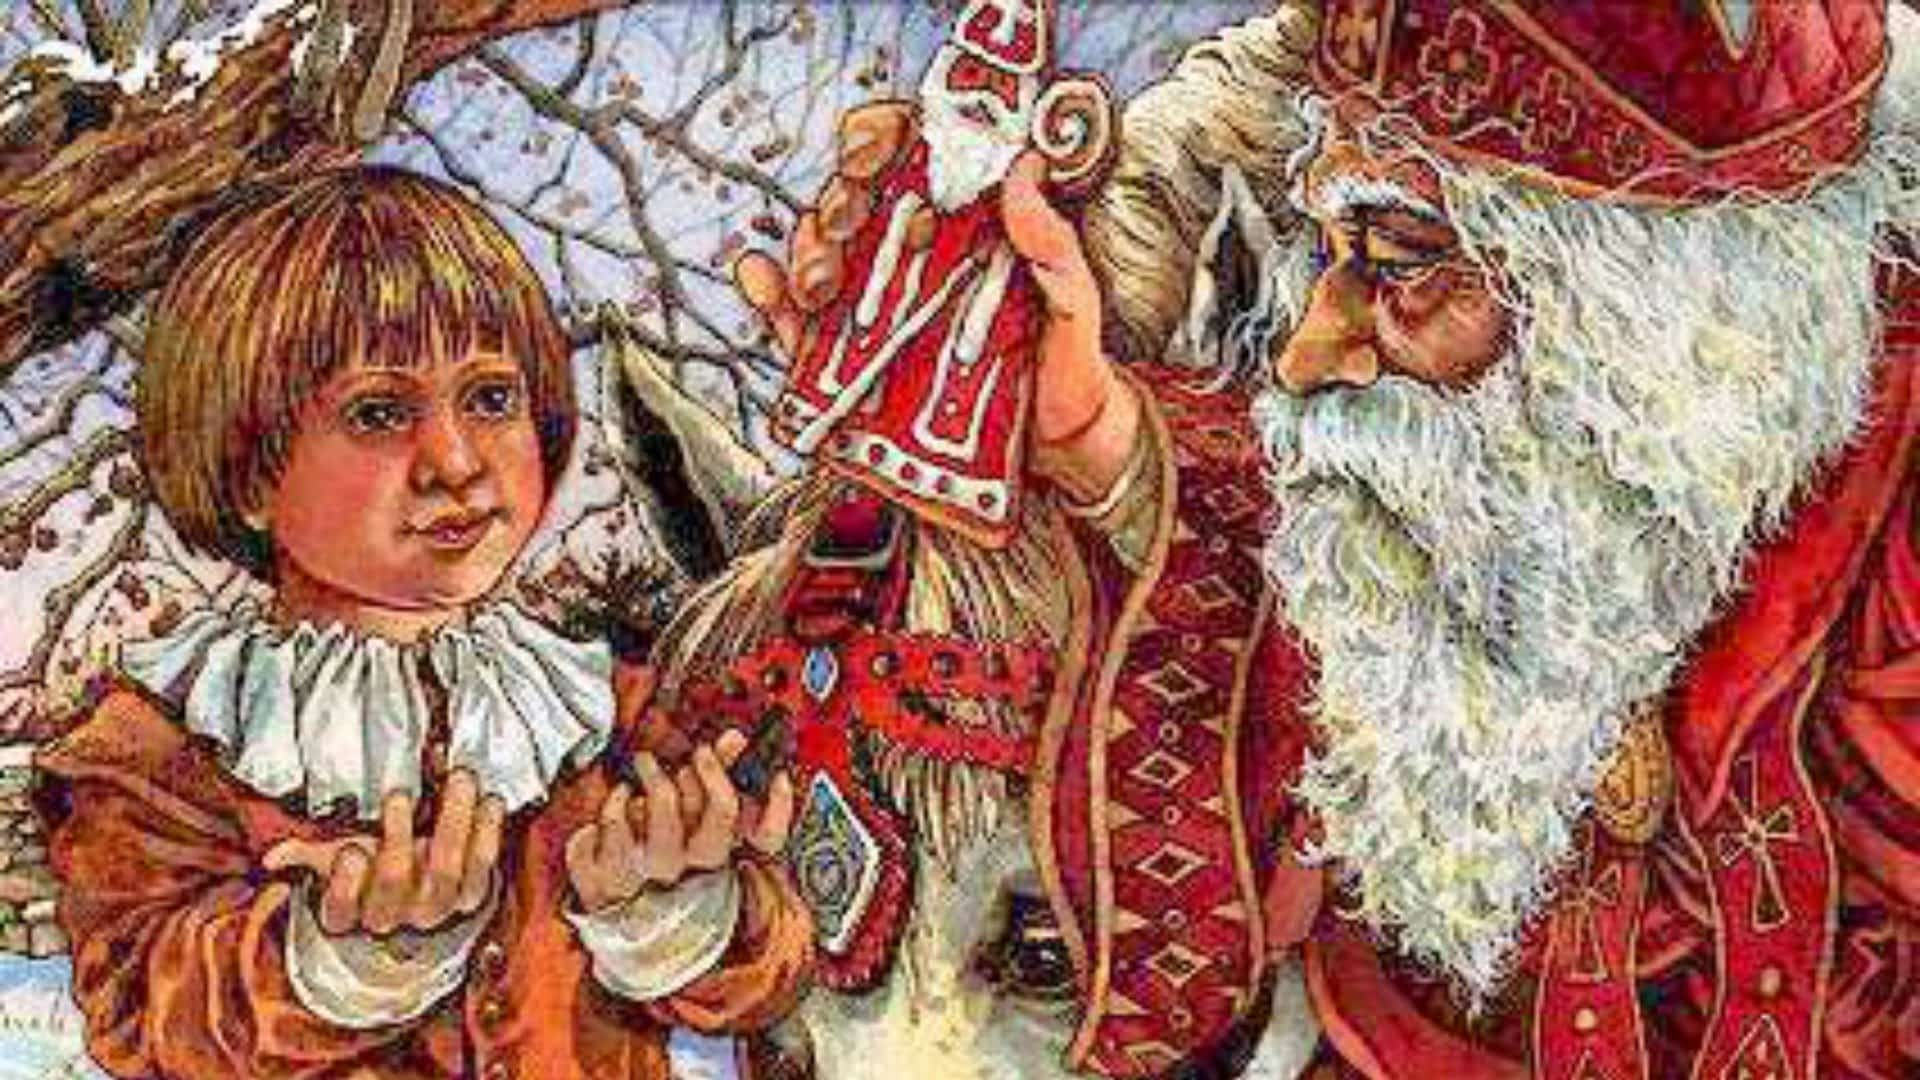 From Saint Nicholas to Santa Claus